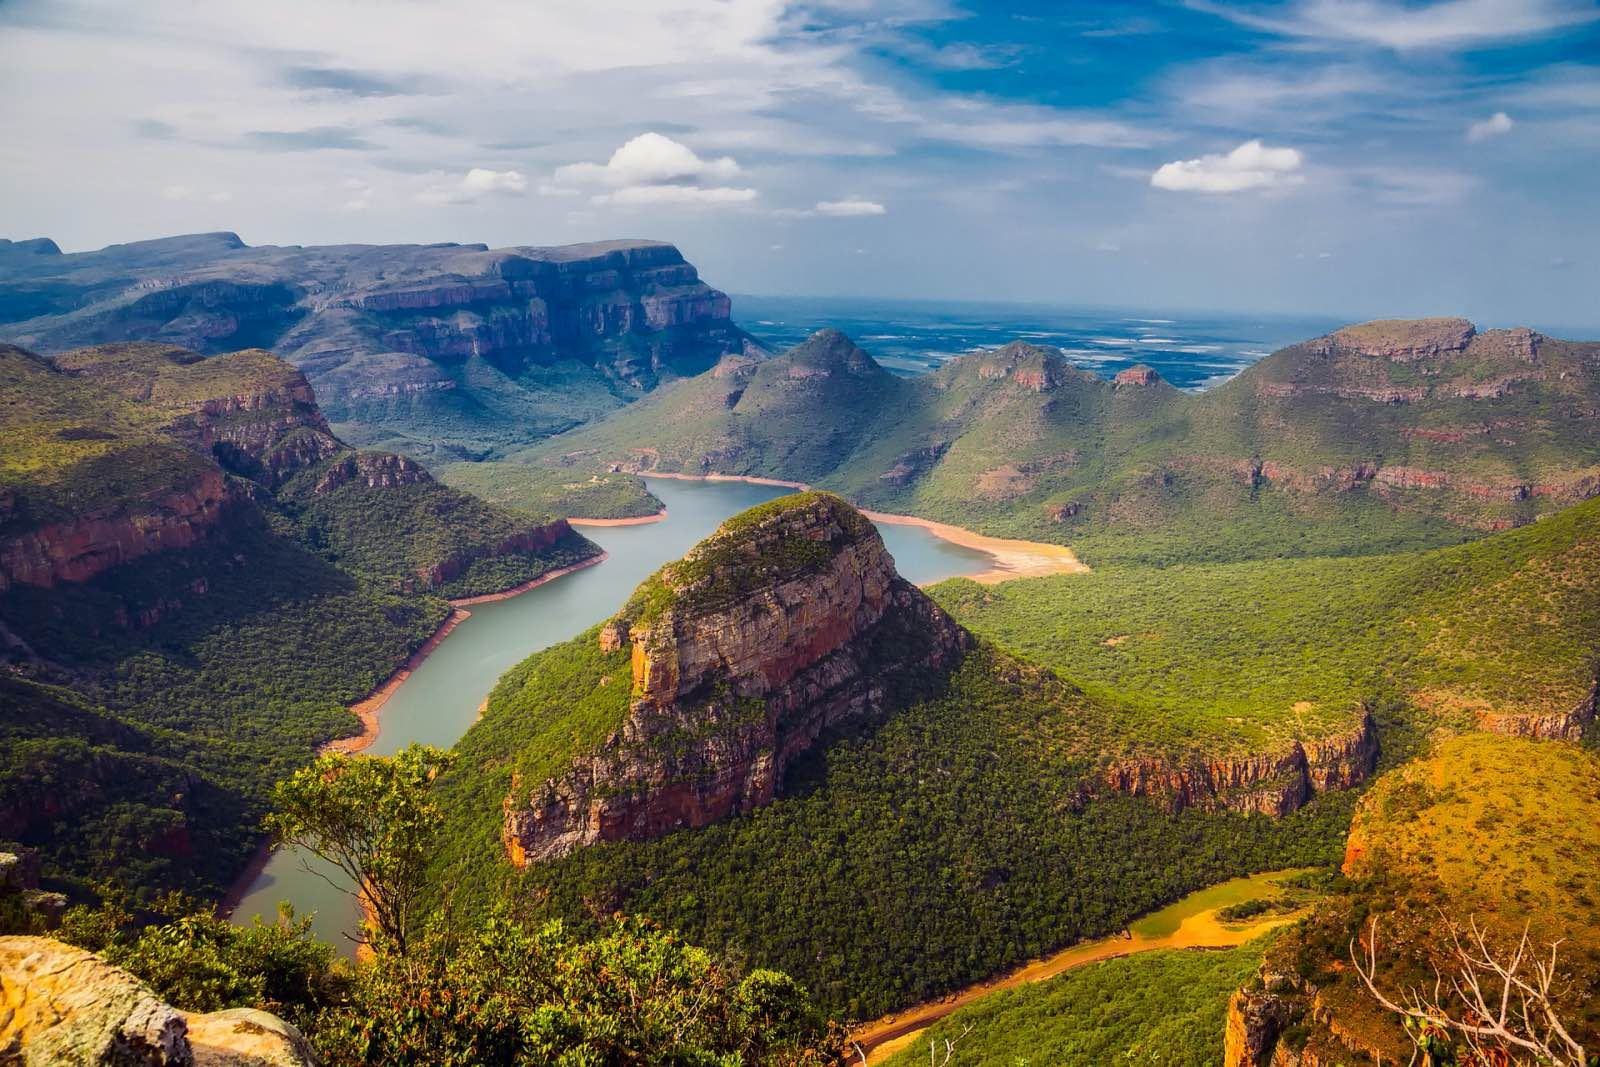 biodiversity, South Africa joins Brazil and Indonesia as world's most biodiverse nations